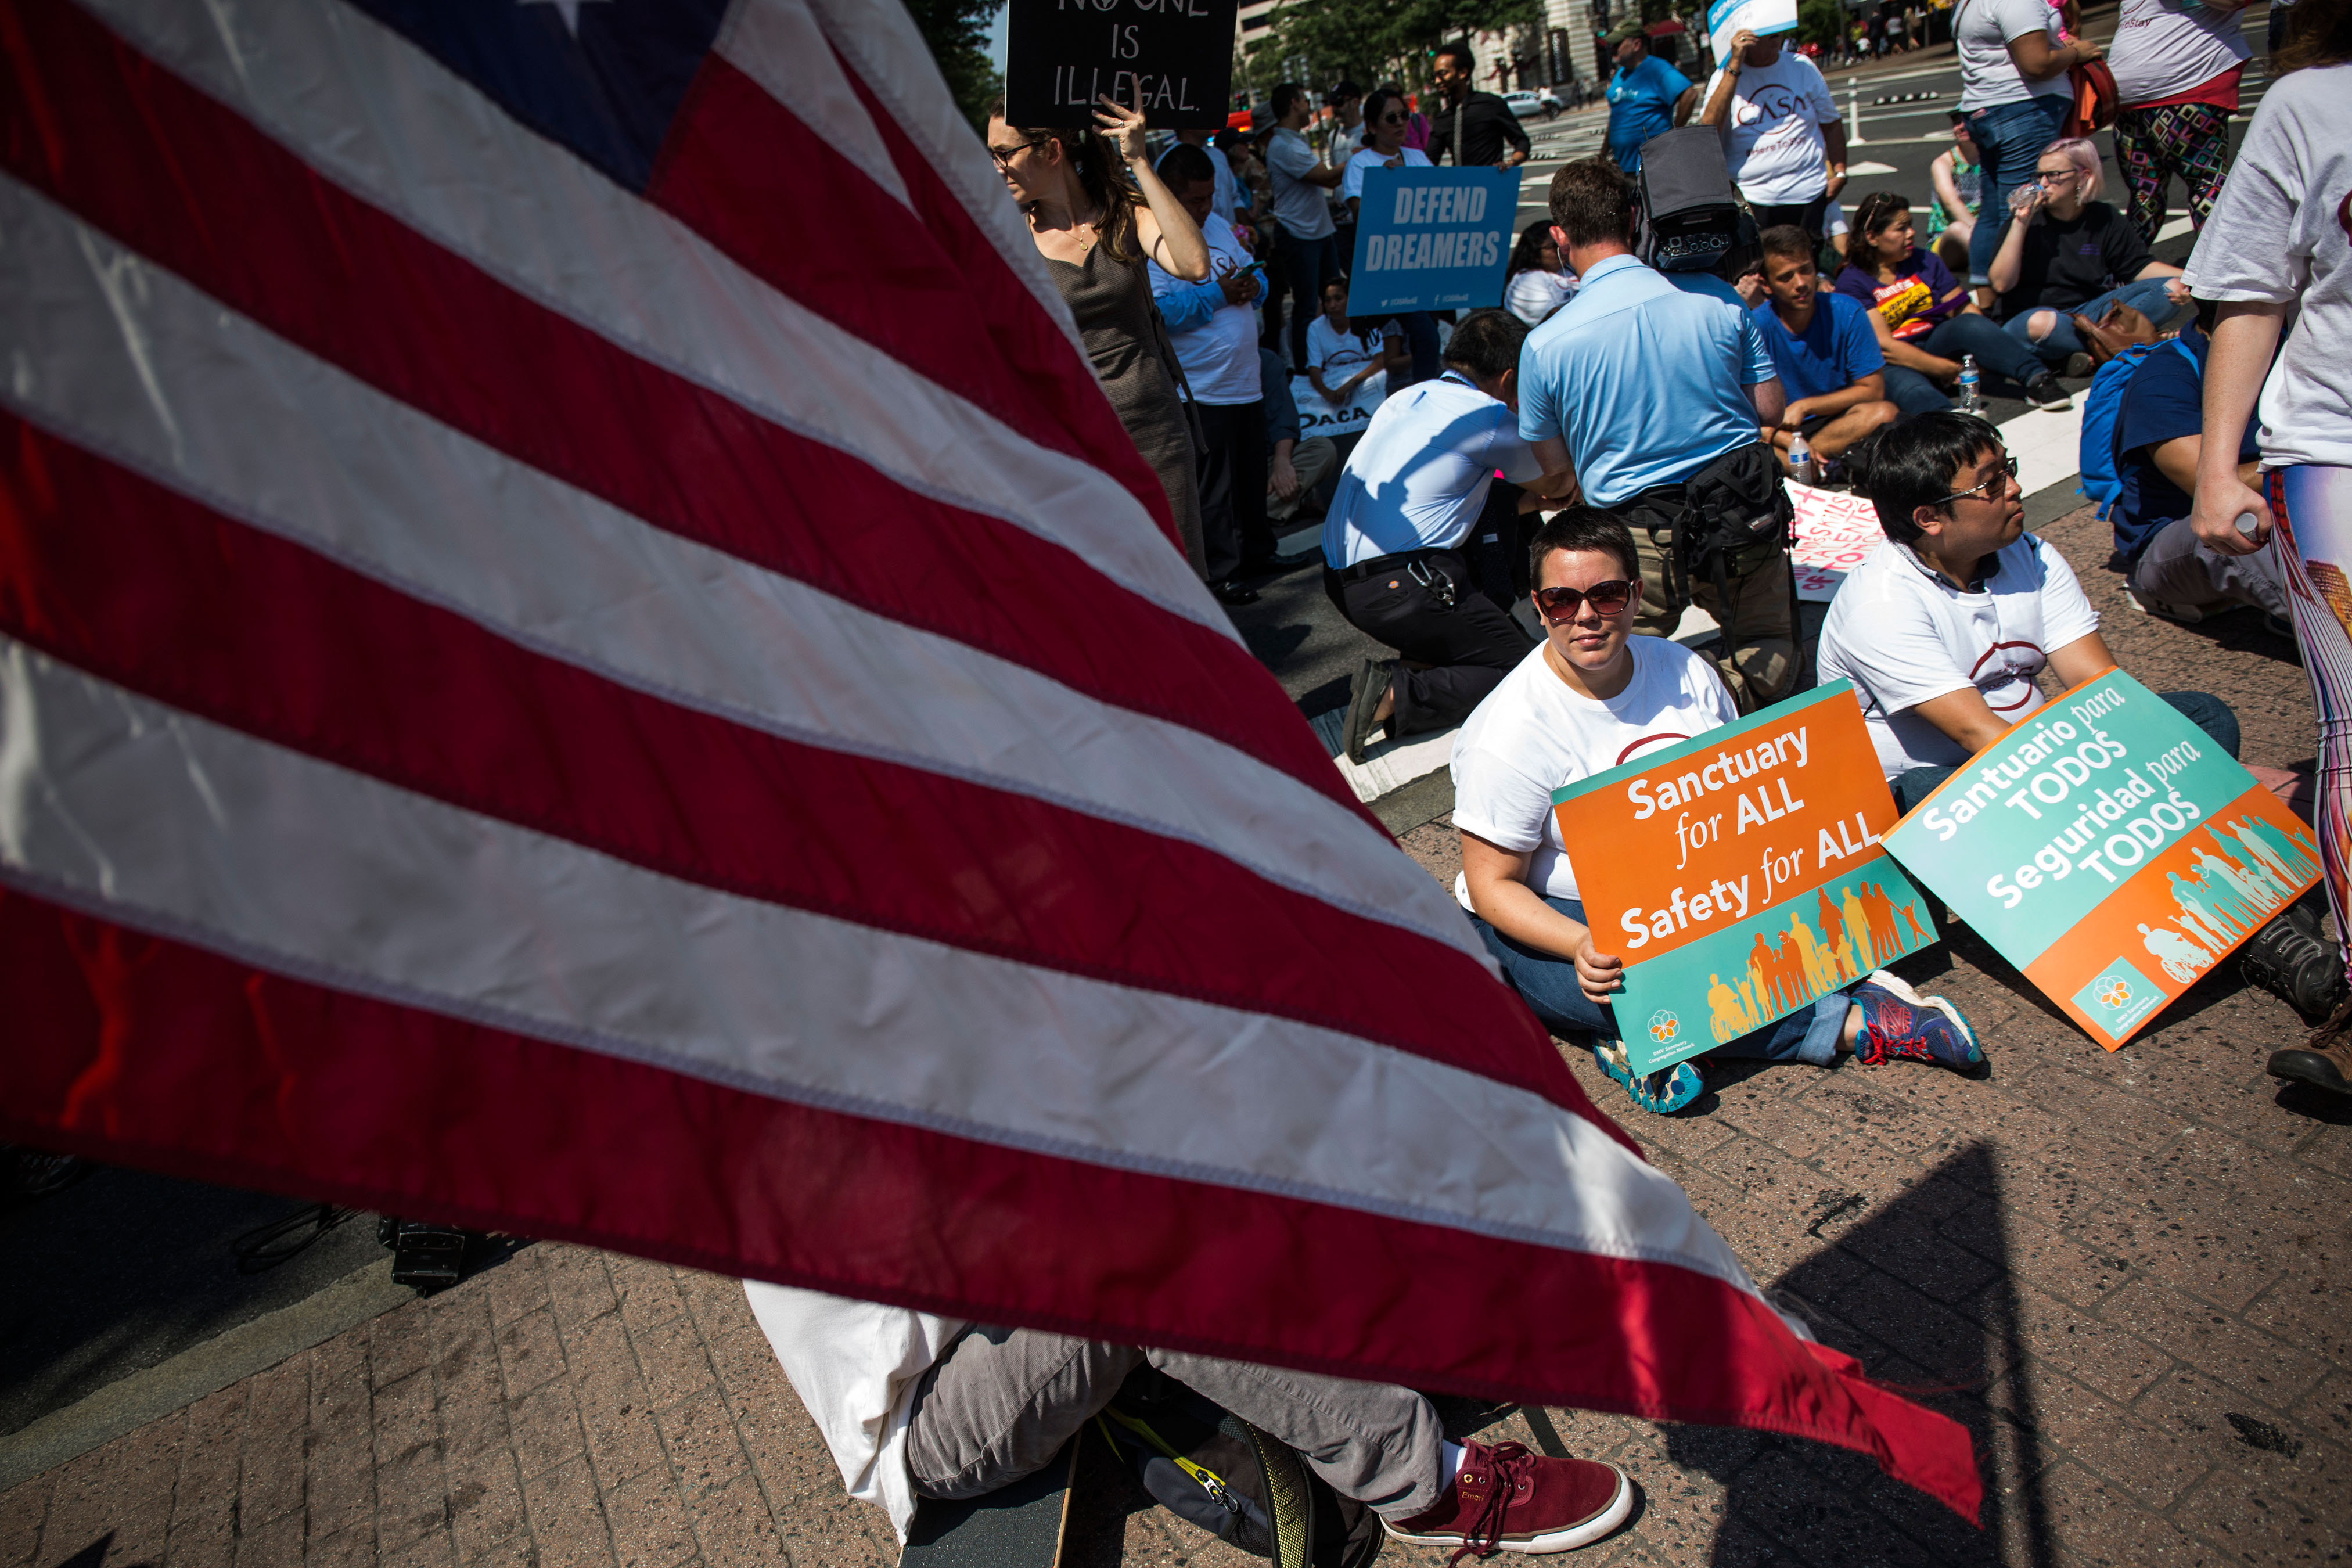 Legal Heritage Supports Letting Dreamers Stay in